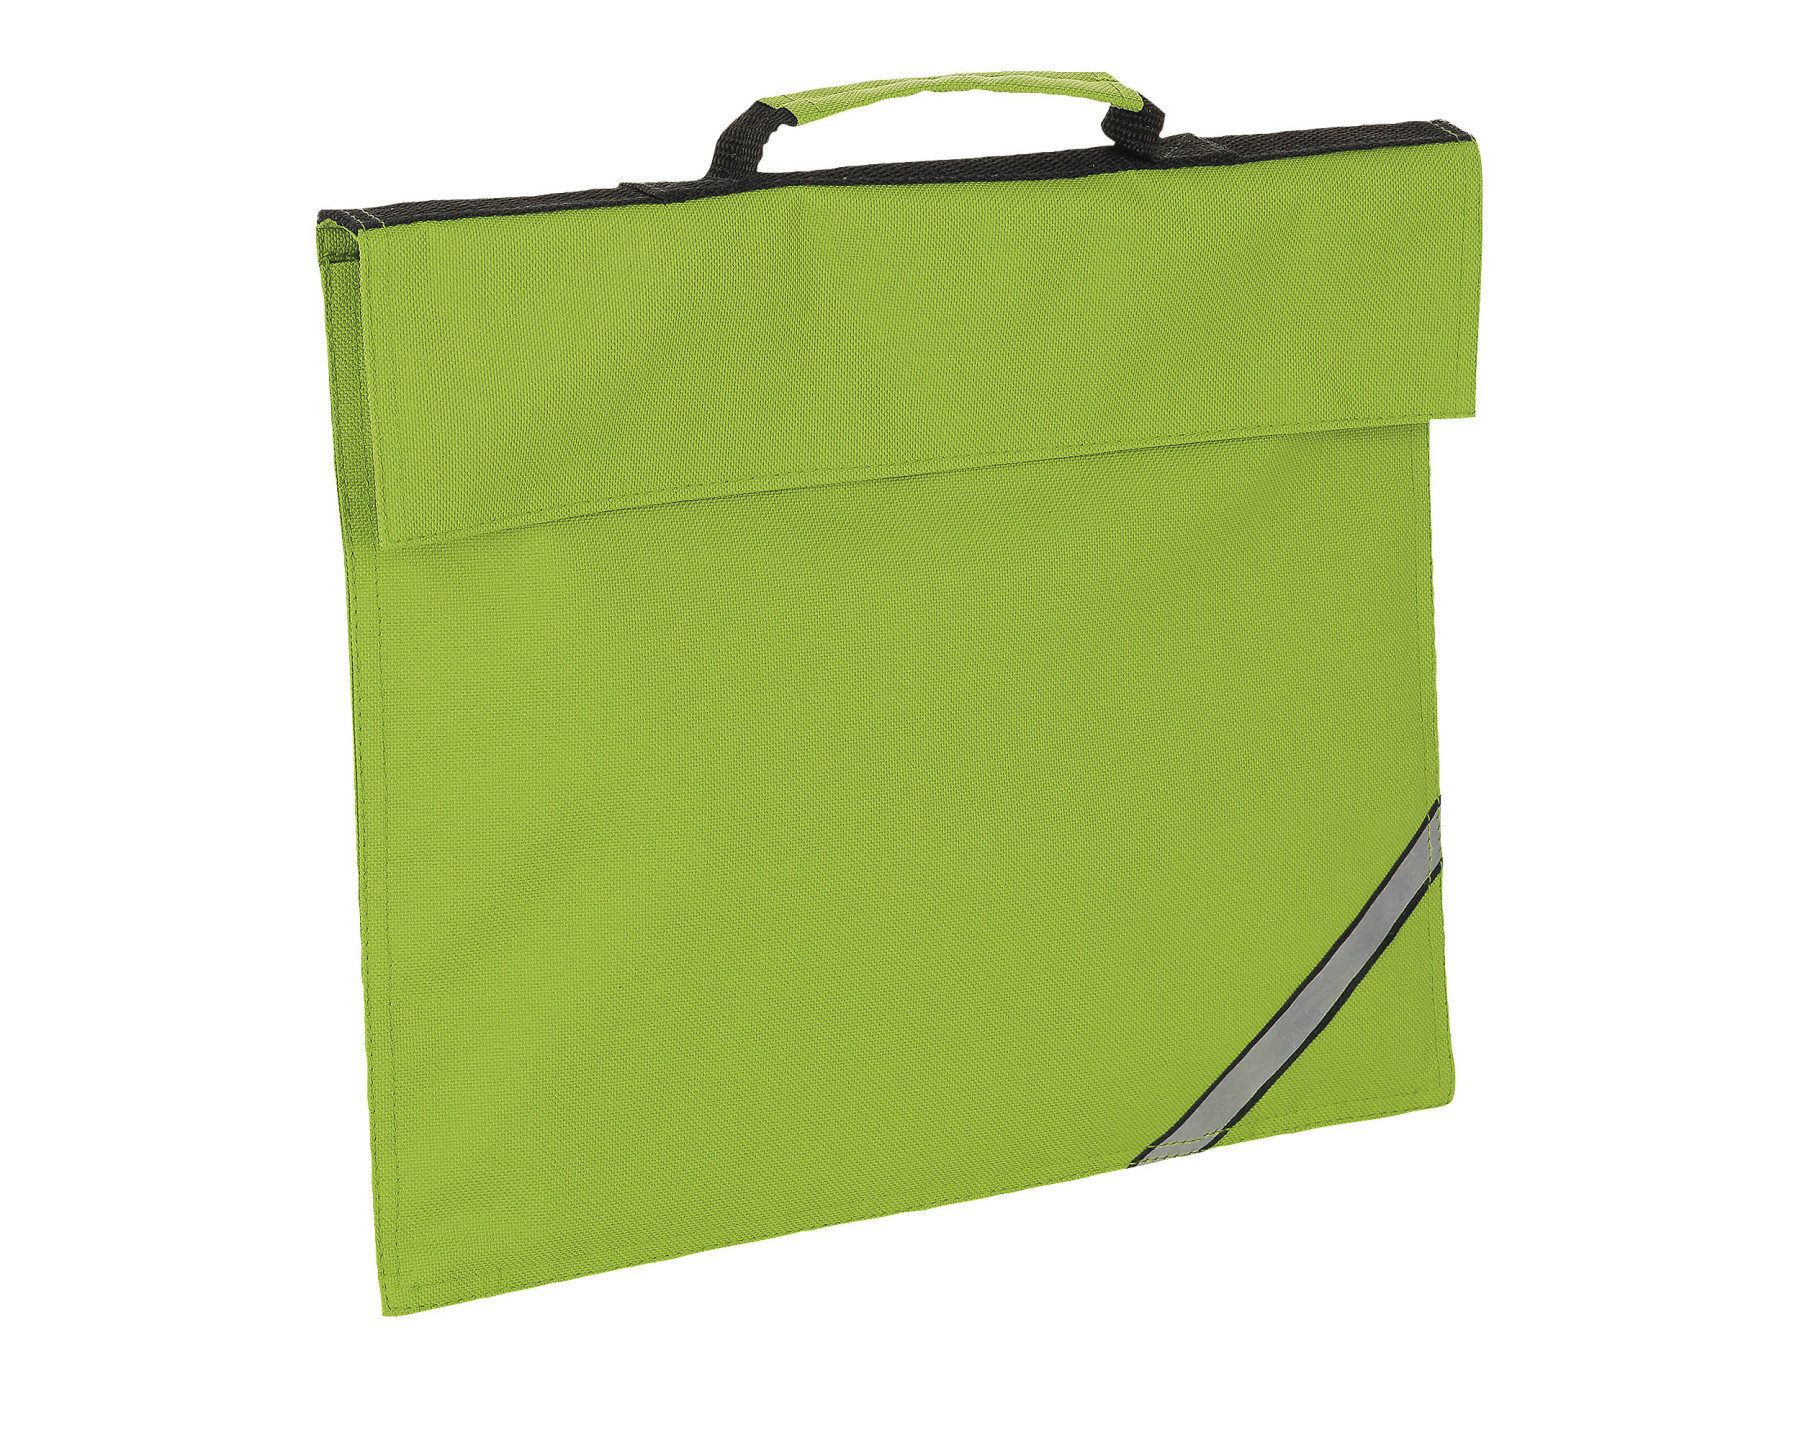 WALLET LIME DOCUMENTS OXFORD WITH REFLECTIVE STRIP